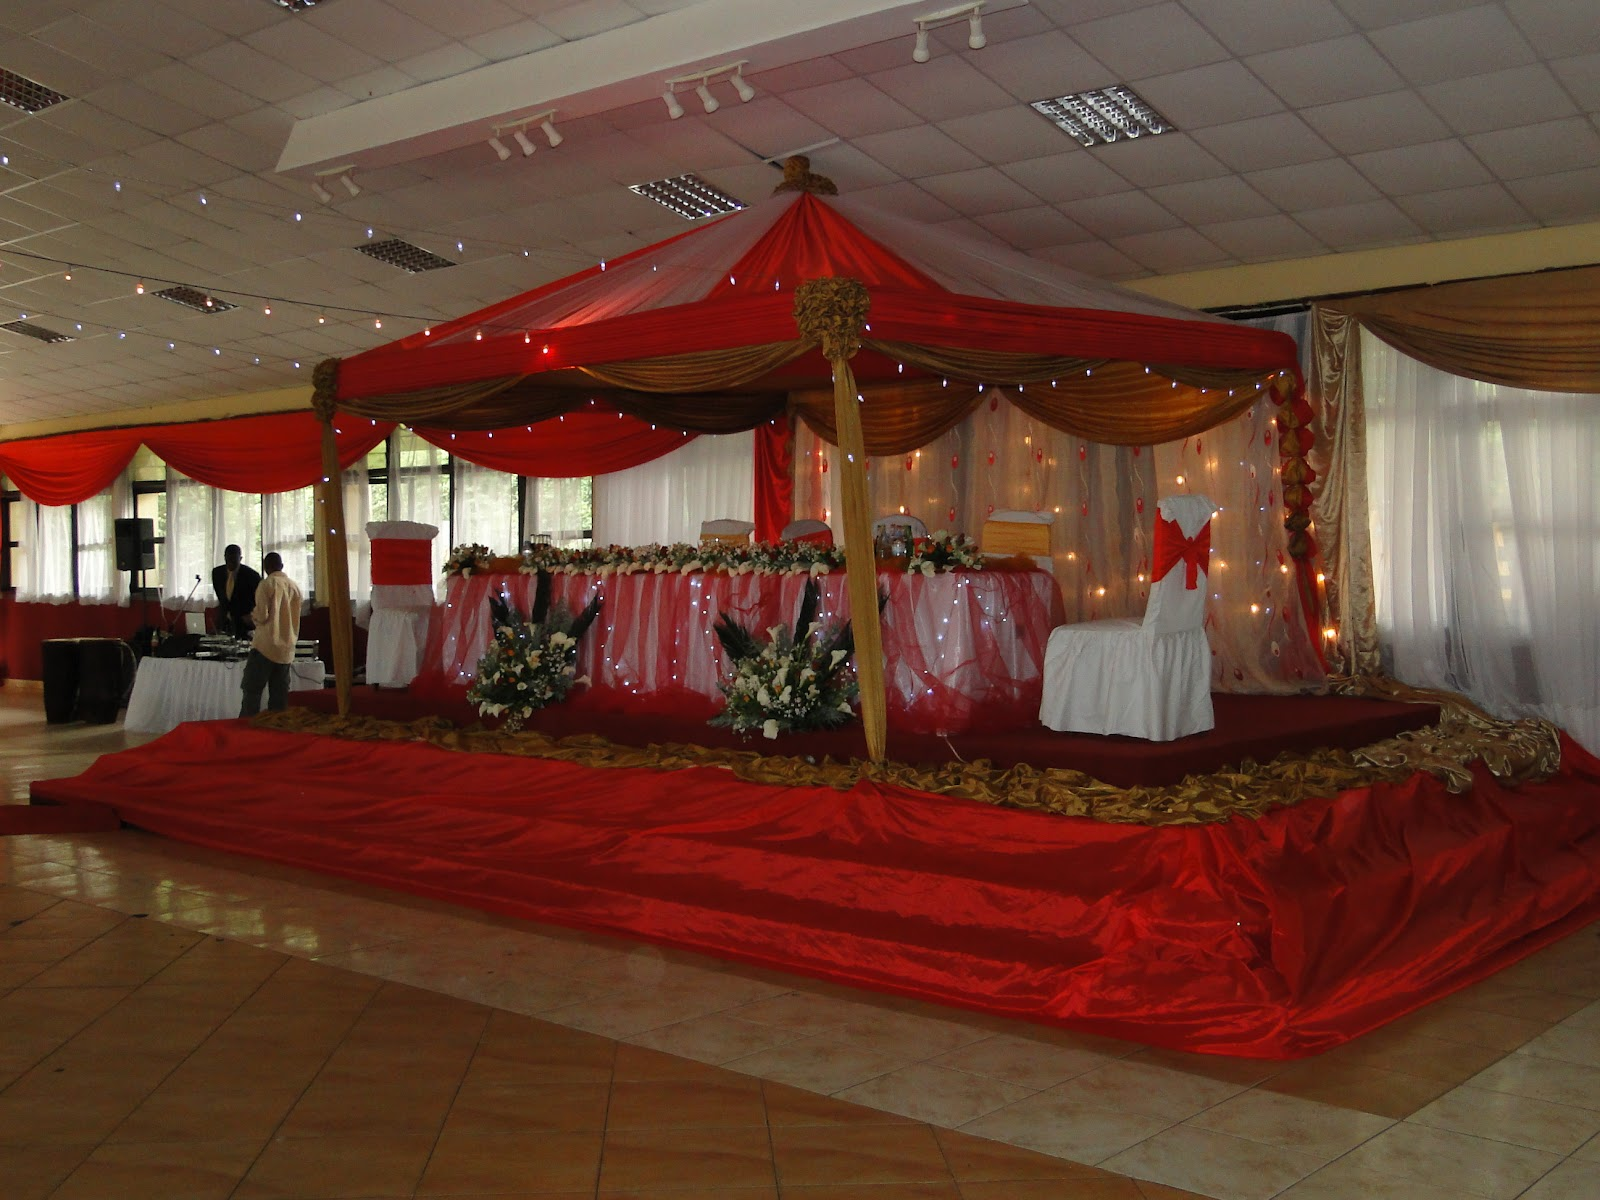 My rwandan journey mushanana madness it was a long and interesting day and honestly i am honored to have been a part of it having said that i think i have had my fill of rwandan weddings junglespirit Gallery